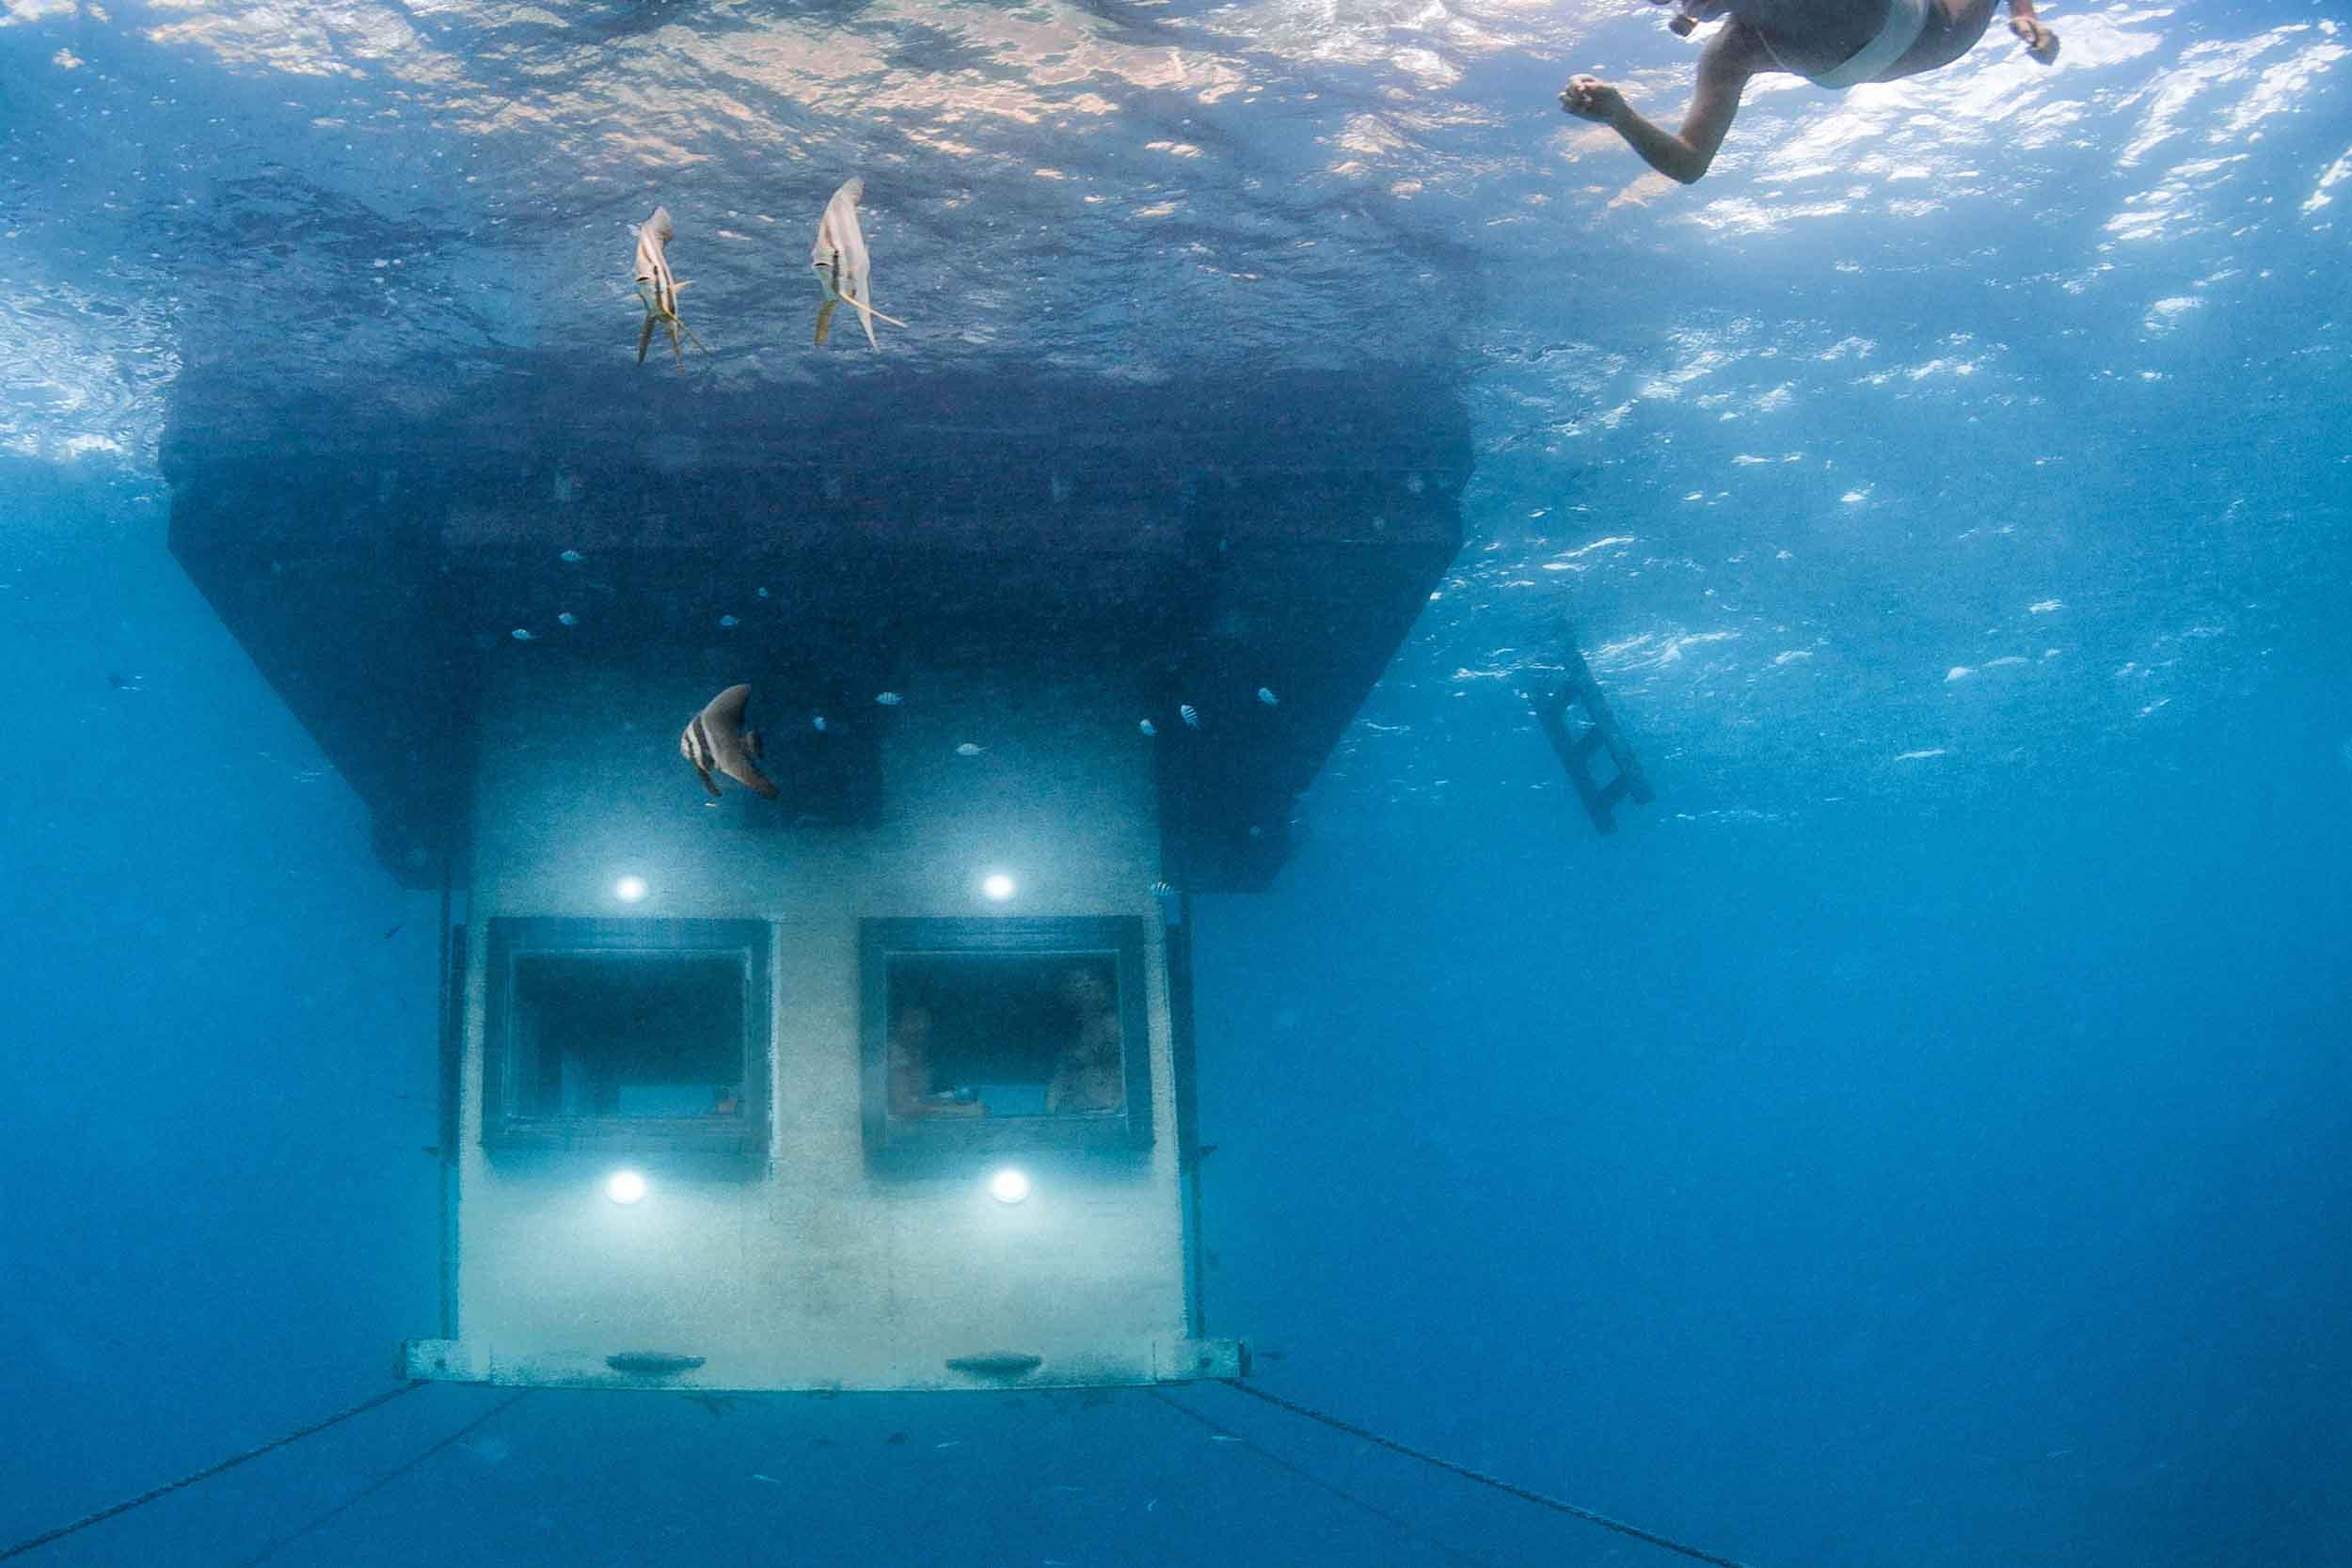 Looking in to the Underwater Room at The Manta Resort